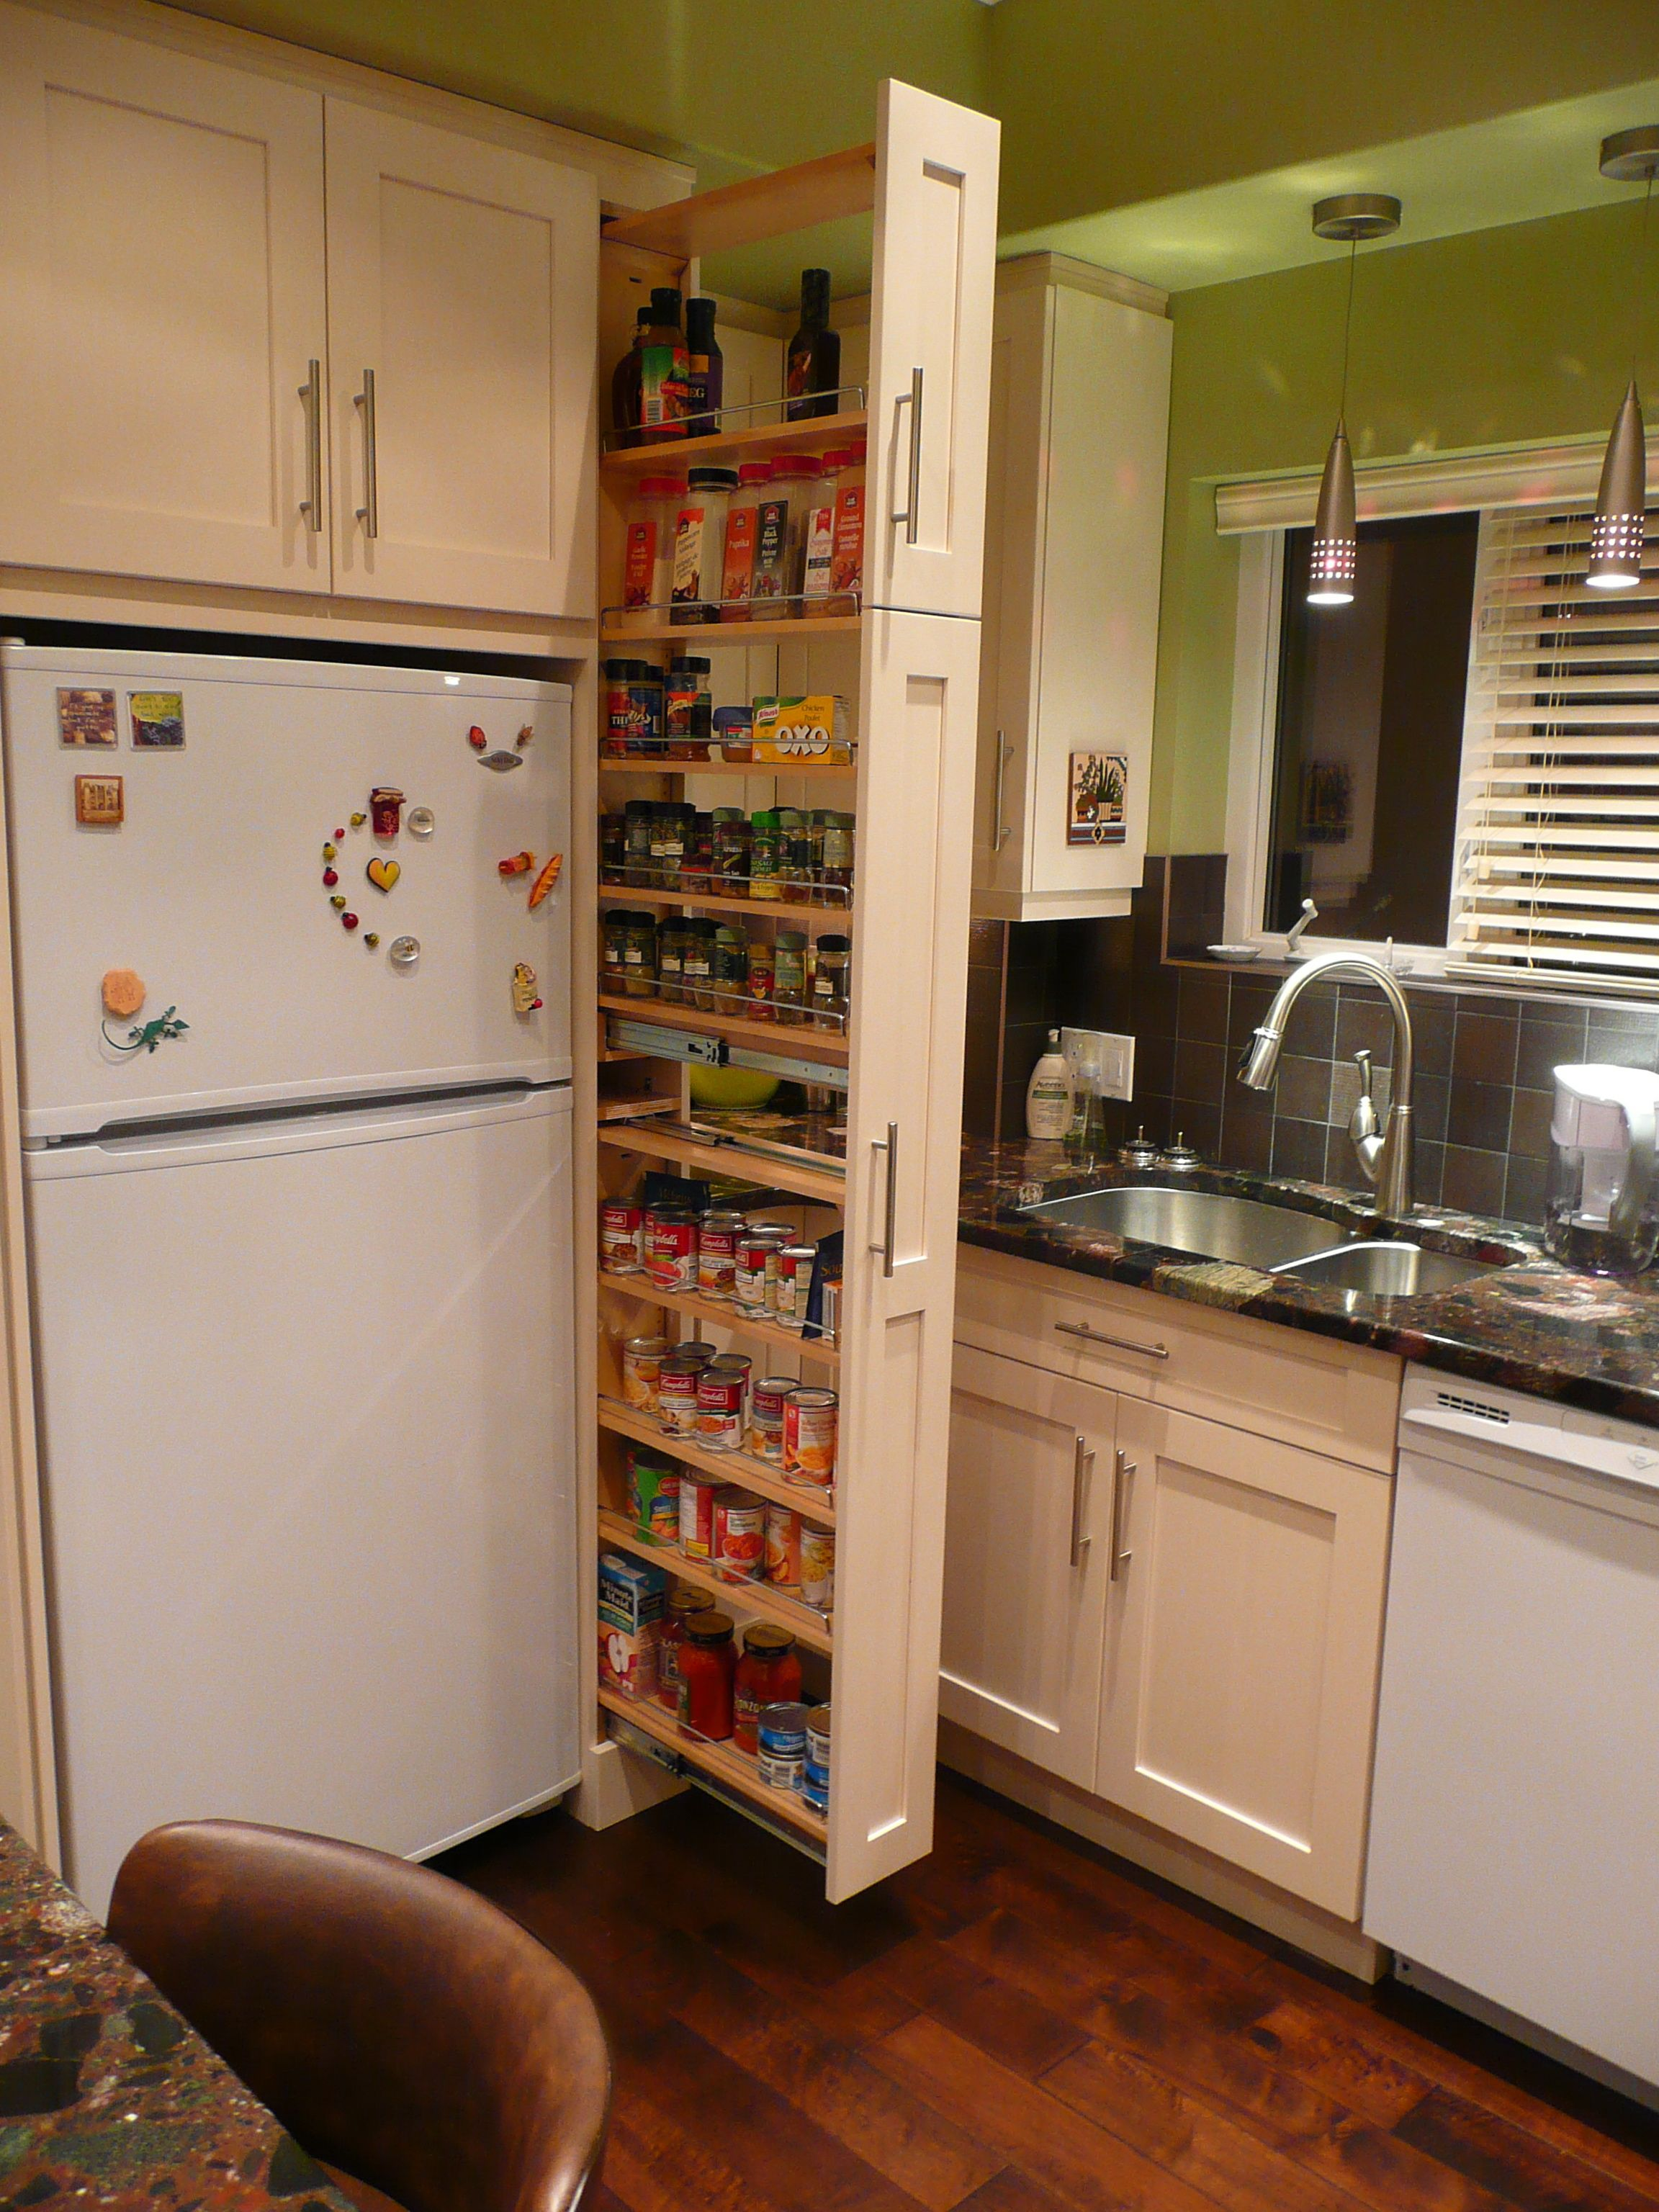 Tall Narrow Kitchen Cabinet Large Tables The Beside Fridge Pulls Out To Reveal A